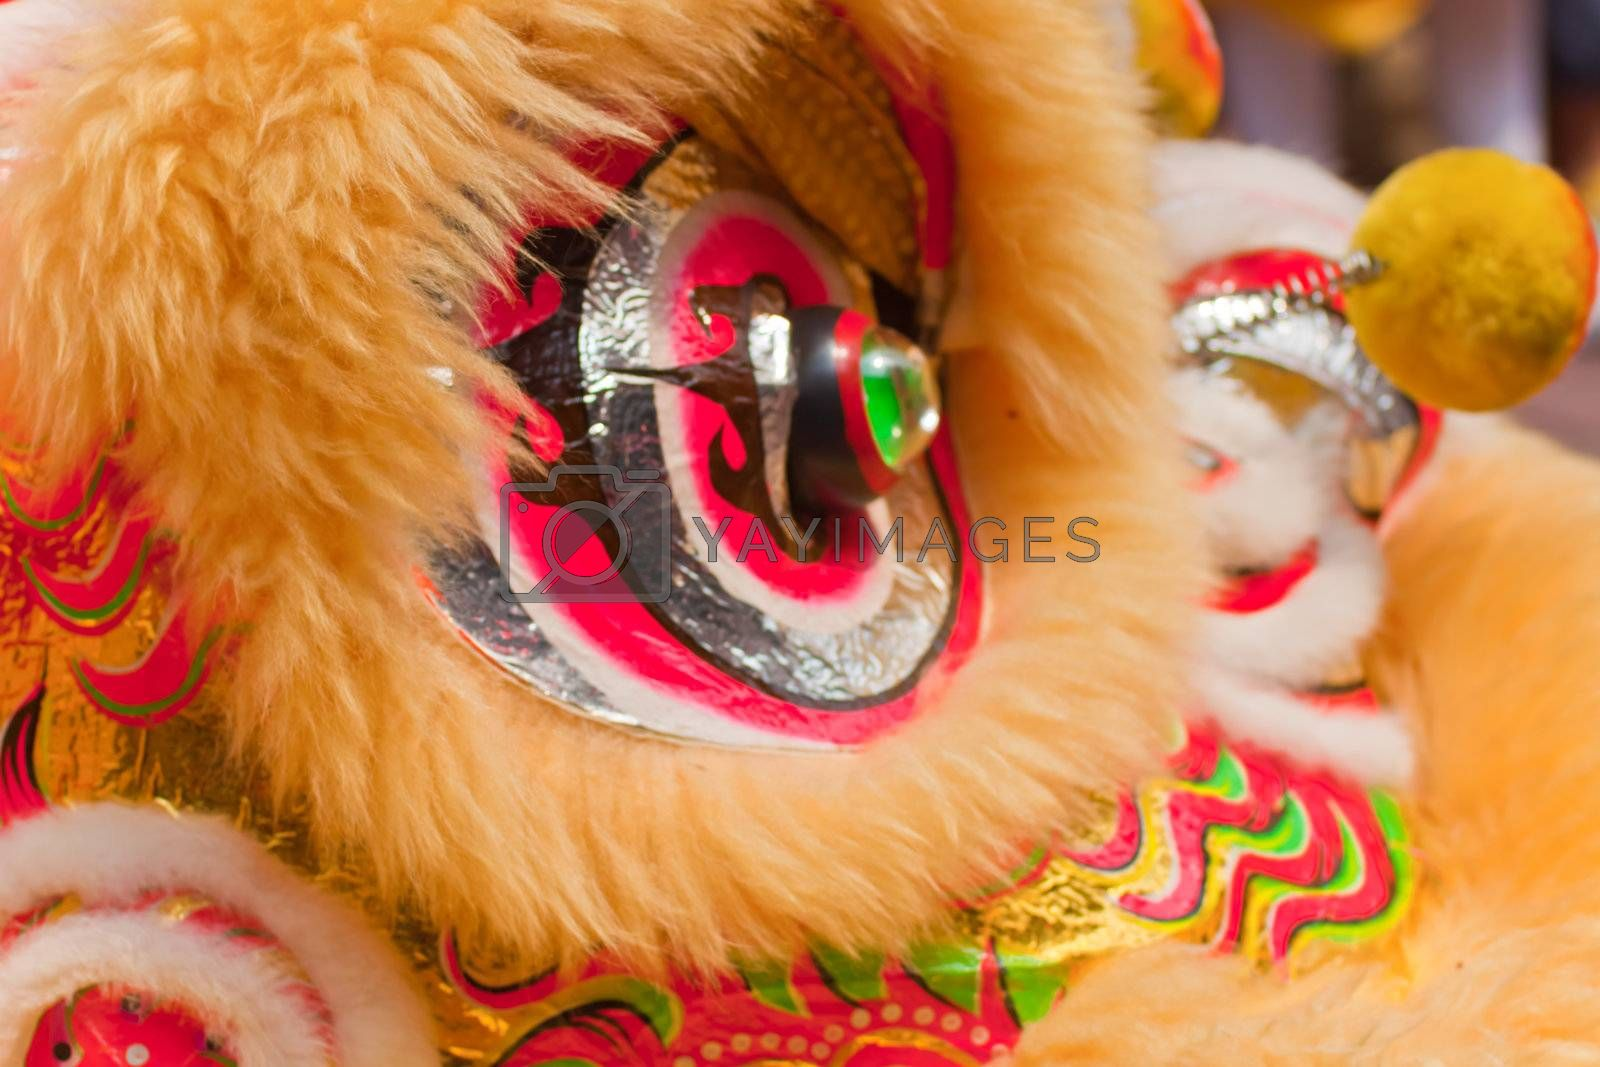 BANGKOK,Chinatown/THAILAND-February 10:Chinese New Year traditions Chinese New Year Celebrations on February 10, 2013 in BANGKOK  by nikky1972